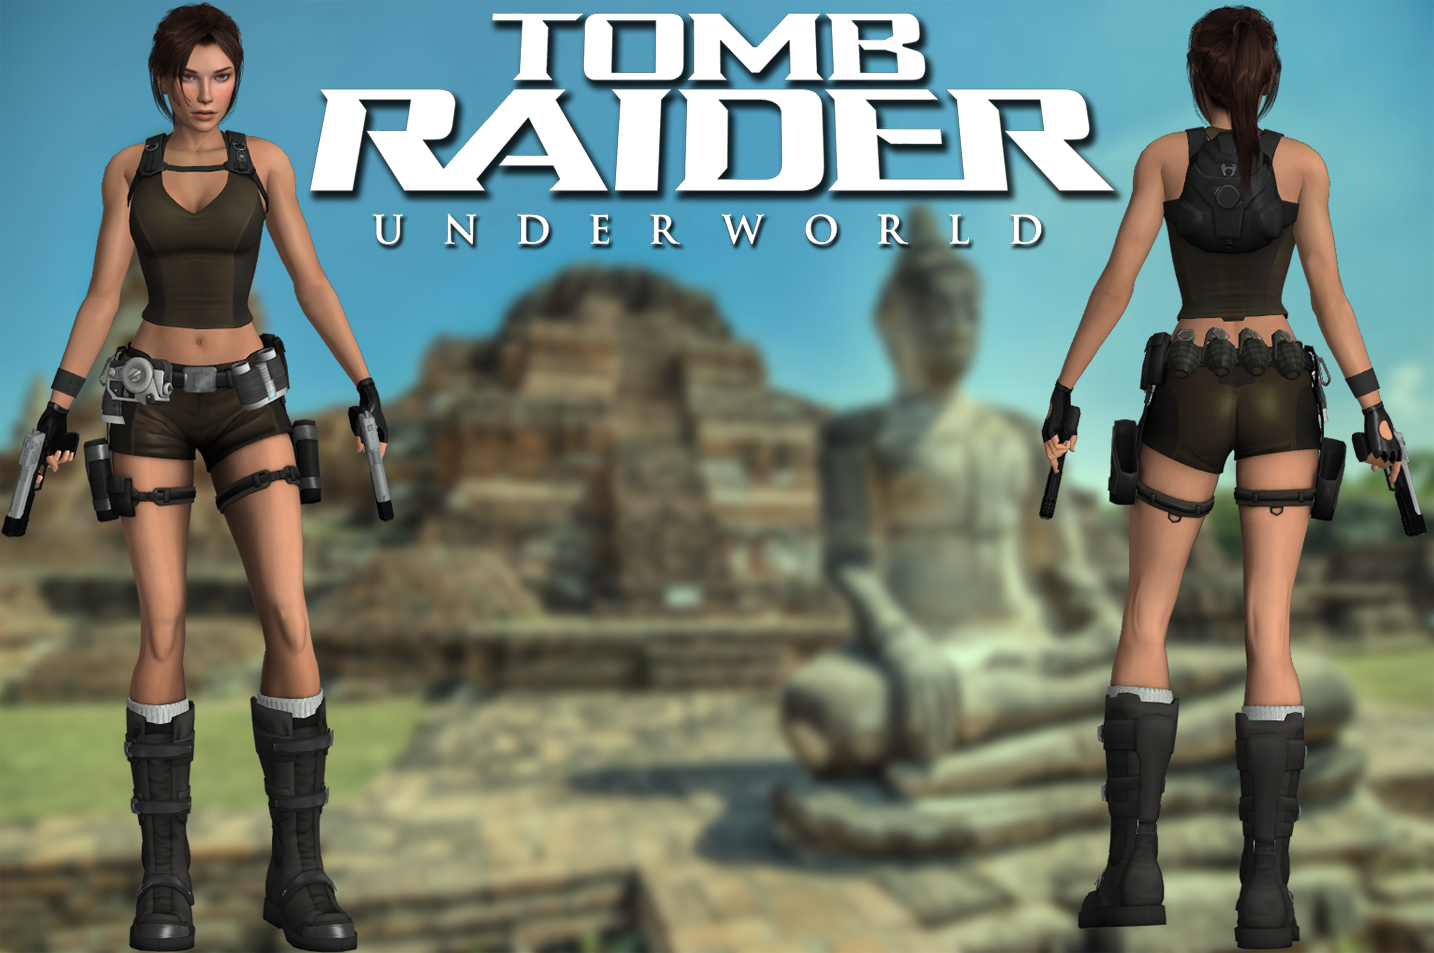 Tomb raider 2023 outfits nude girls